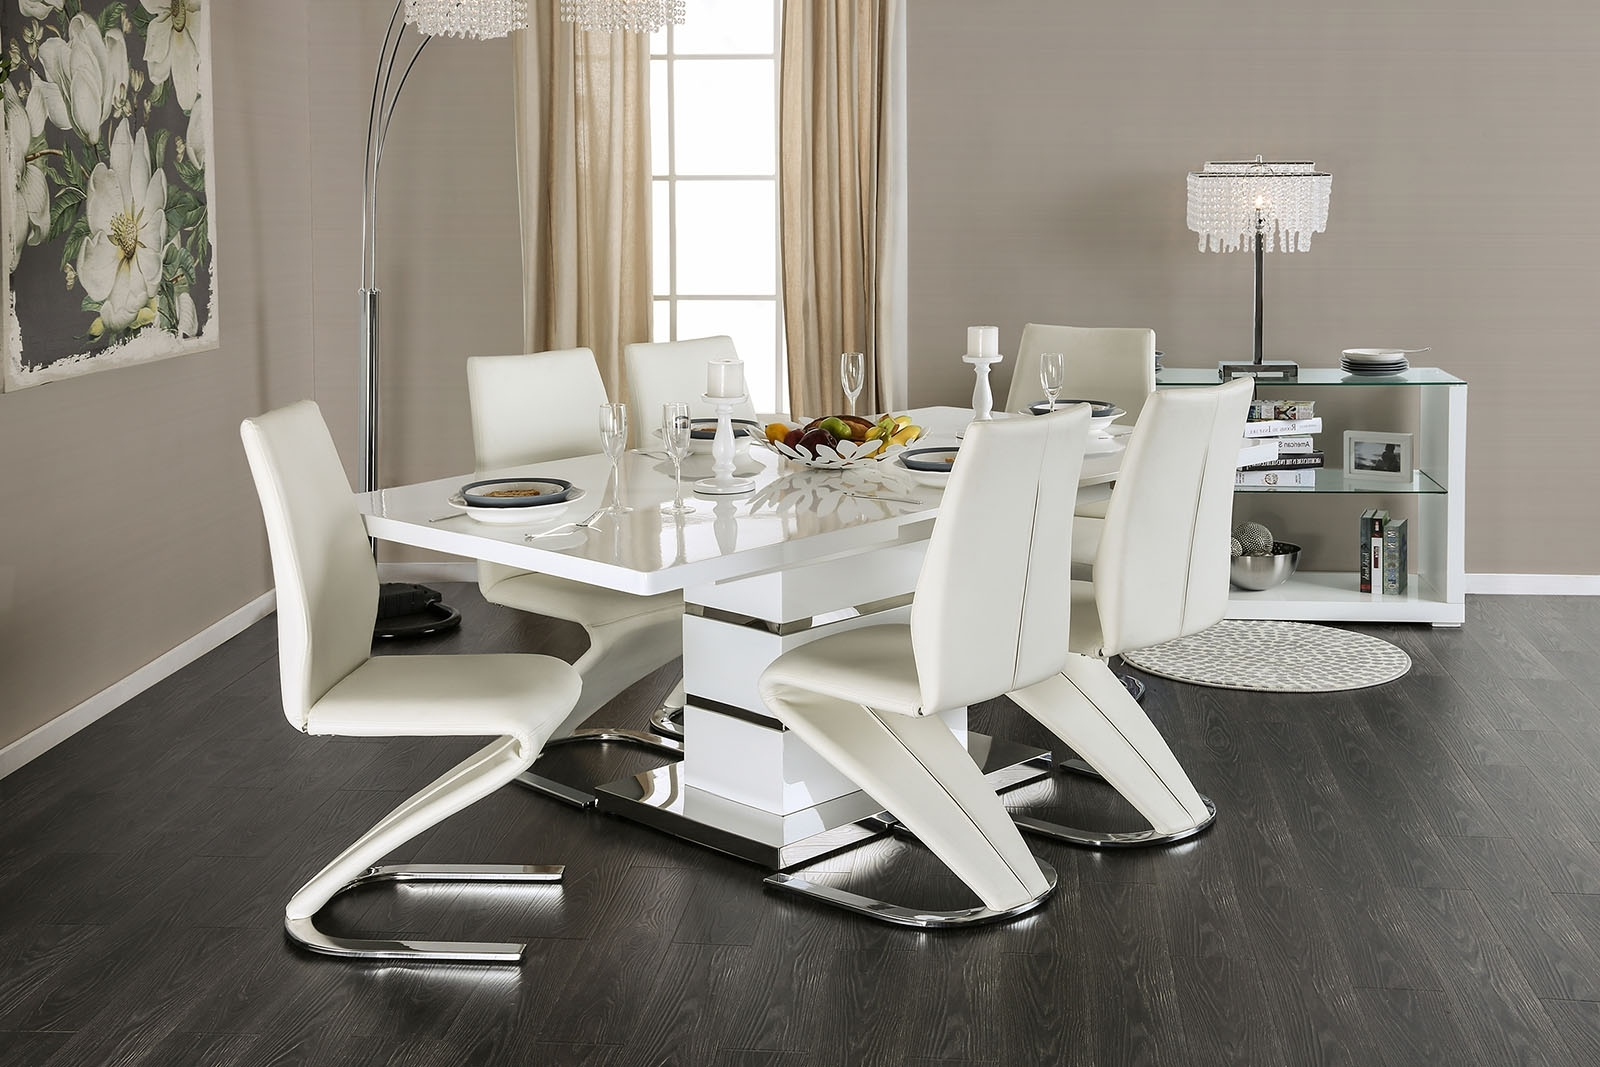 High Gloss Dining Tables In Current Midvale Contemporary Style White High Gloss Lacquer Finish & Chrome (View 10 of 25)